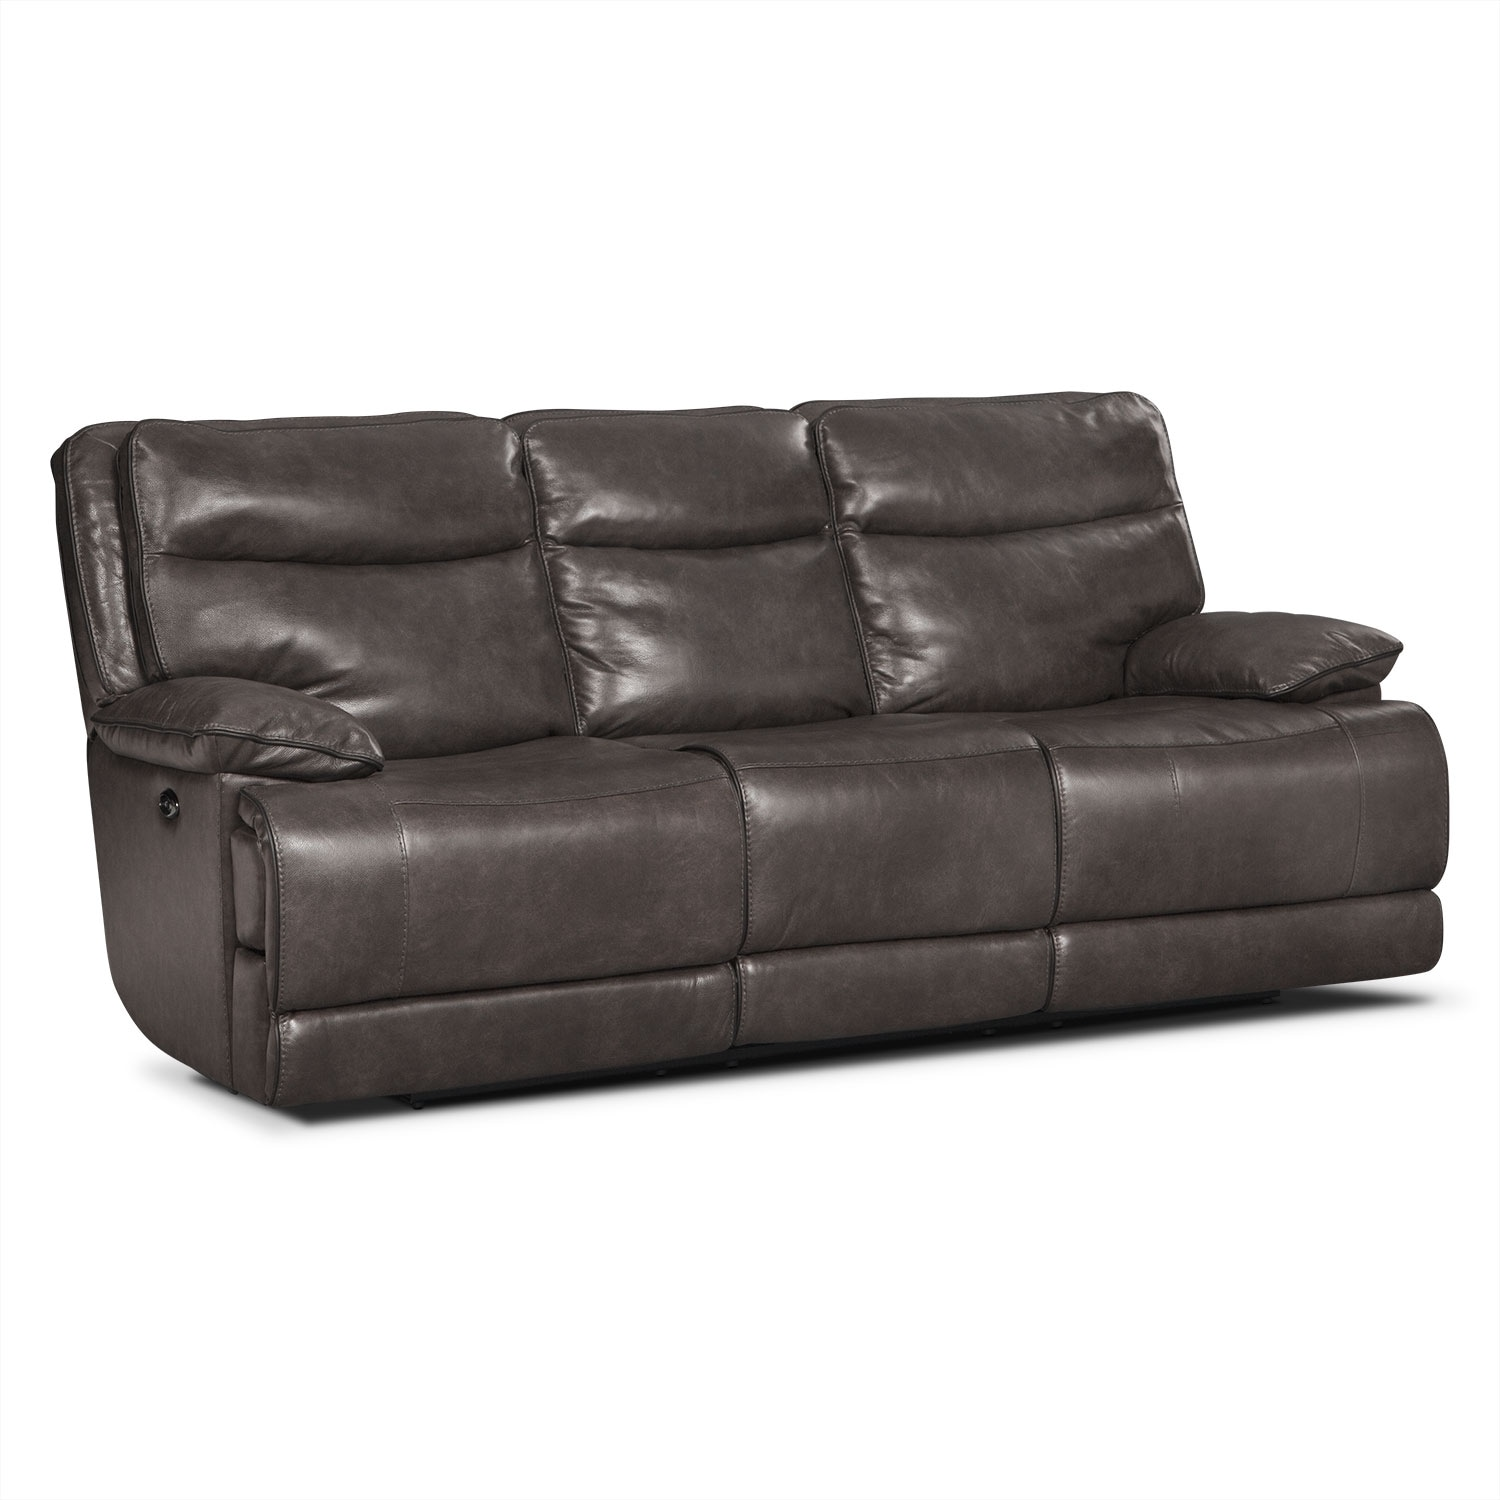 Monaco Power Reclining Sofa - Gray